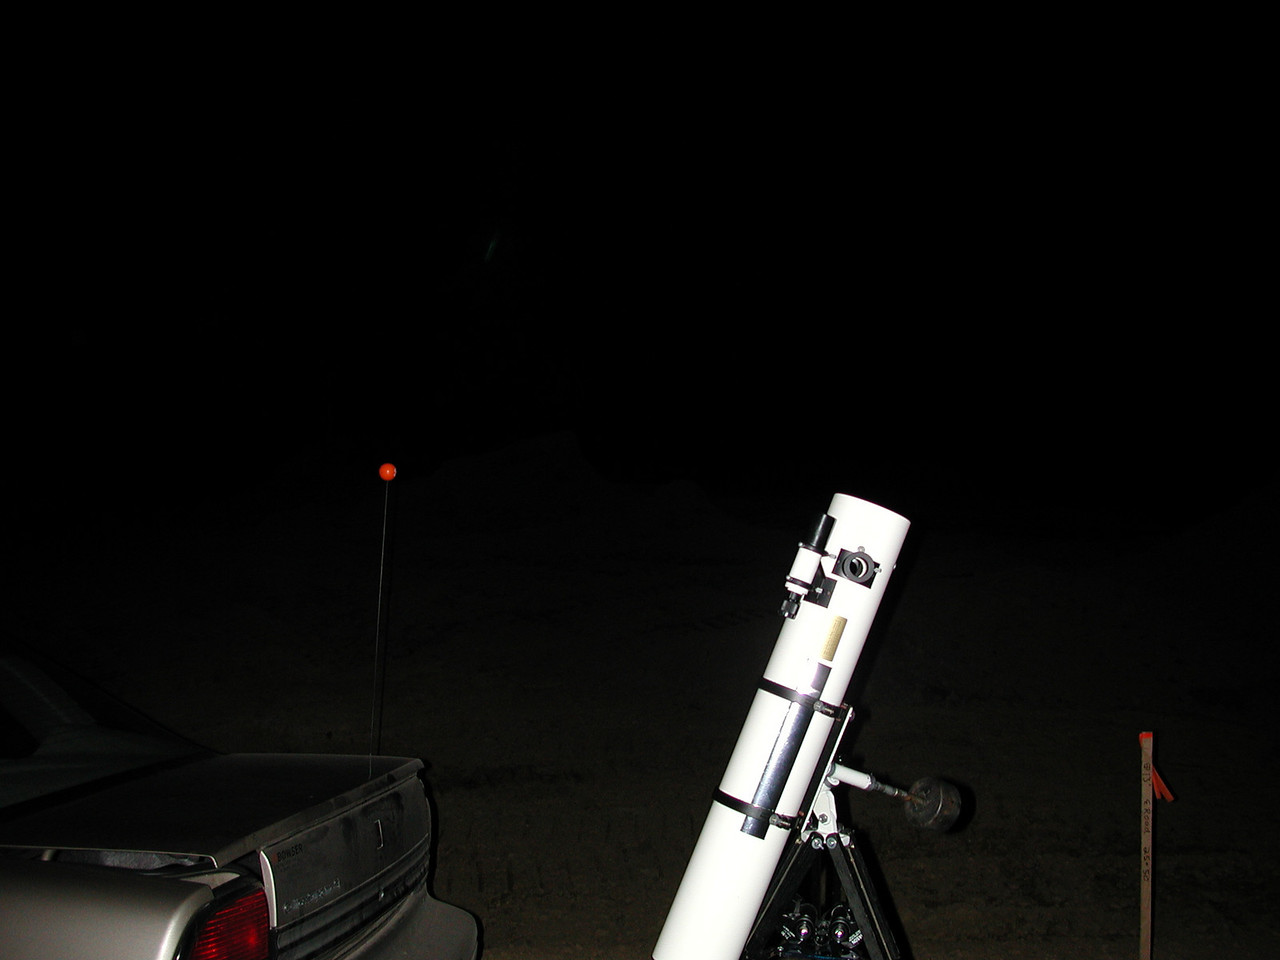 Pull the telescope out of the cars trunk, attach the counter-weight to the equatorial mount, place the tube assembly in the rings and extend the tripods legs. Now your ready to go!